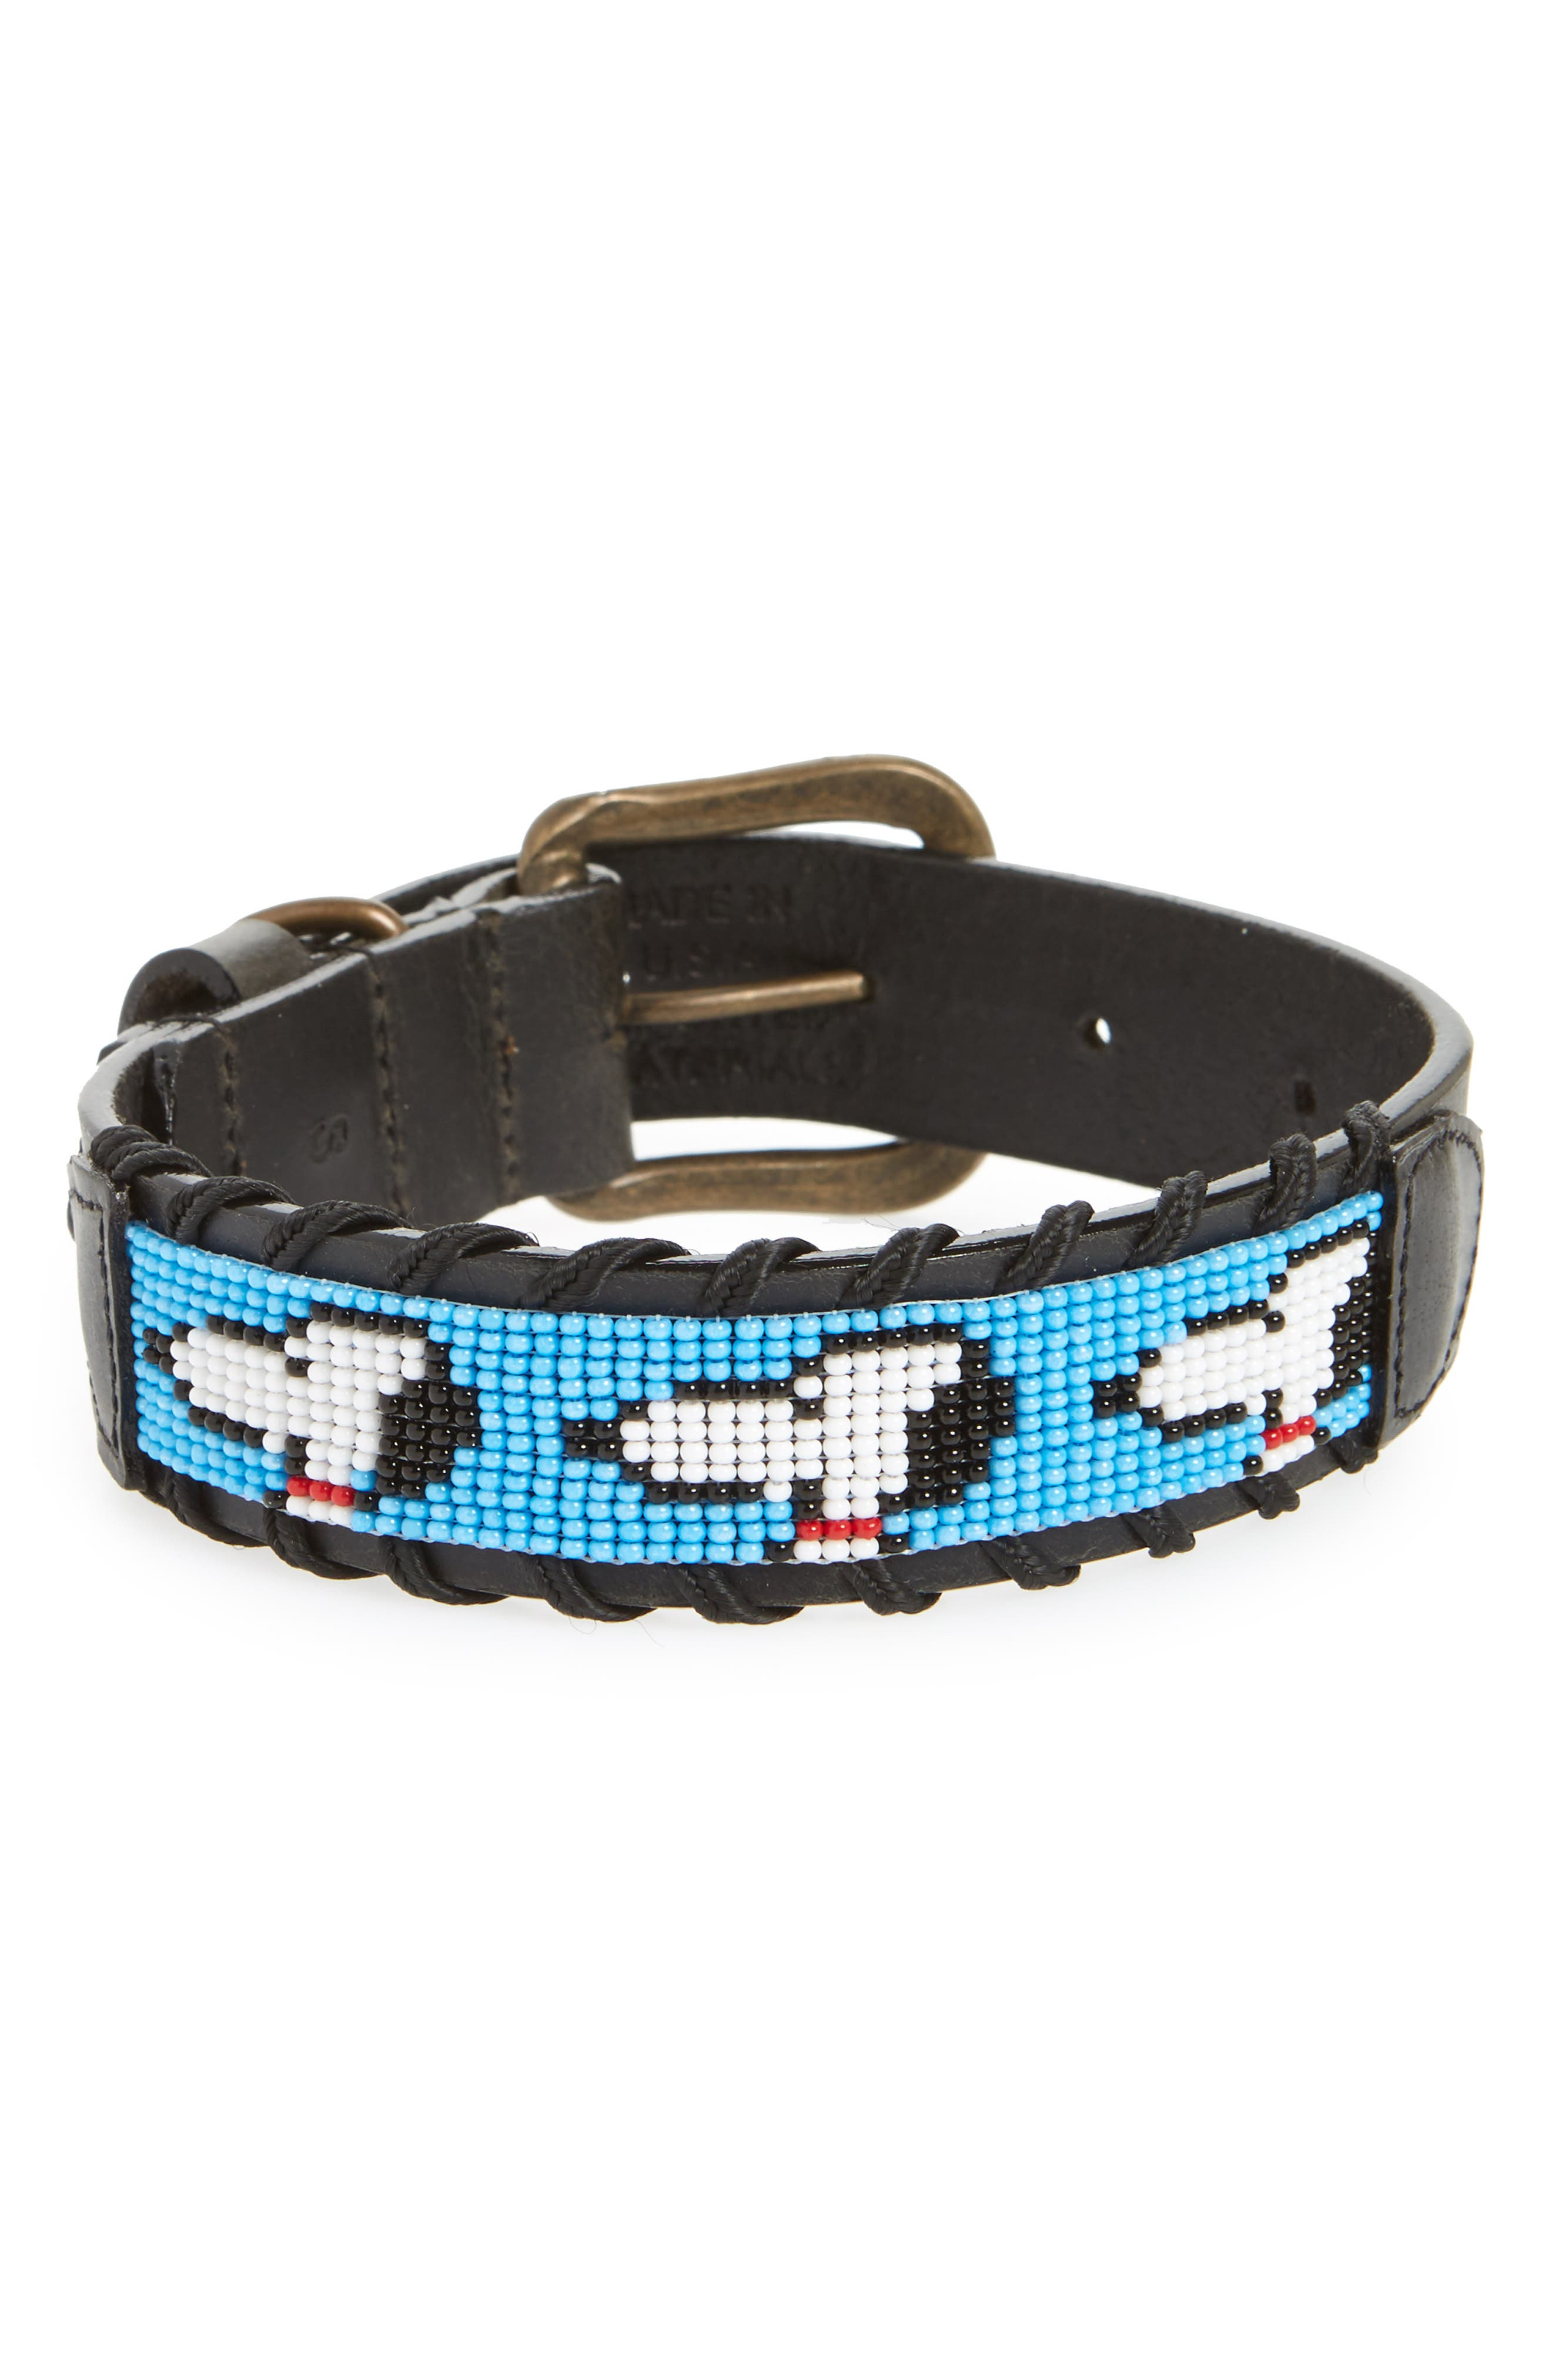 Peanuts - Snoopy Silhouette Beaded Dog Collar,                             Main thumbnail 1, color,